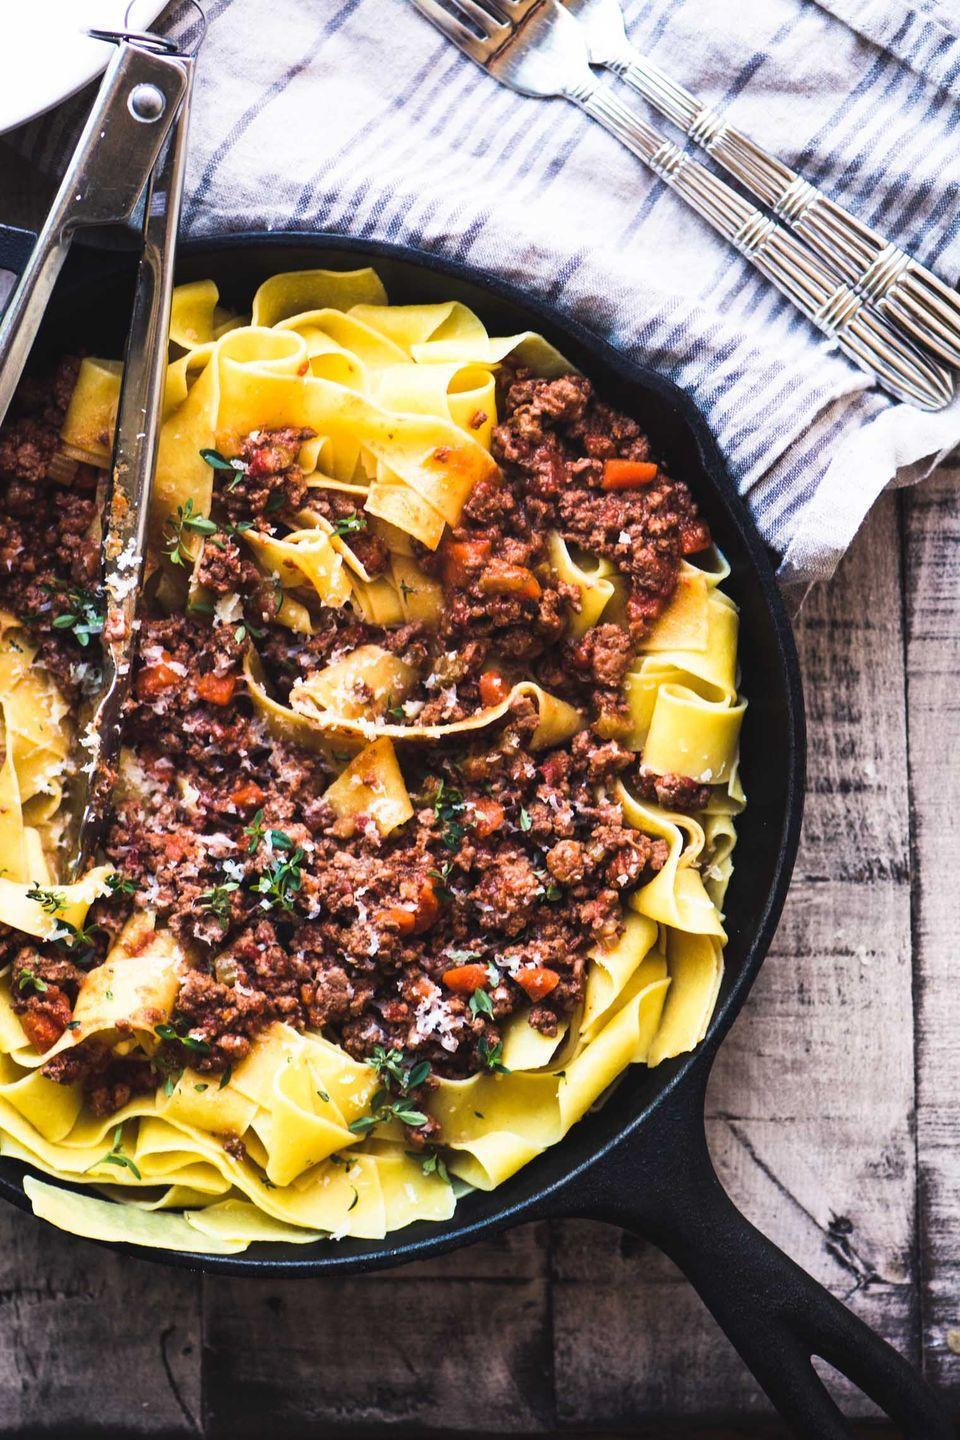 """<p>This classic Italian meat sauce gets even better the longer it cooks. Make a big batch on Sunday and enjoy it all week long. </p><p><strong>Get the recipe at <a href=""""https://theviewfromgreatisland.com/weeknight-dinner-pasta-bolognese/#recipe"""" rel=""""nofollow noopener"""" target=""""_blank"""" data-ylk=""""slk:The View from Great Island"""" class=""""link rapid-noclick-resp"""">The View from Great Island</a>.</strong></p>"""